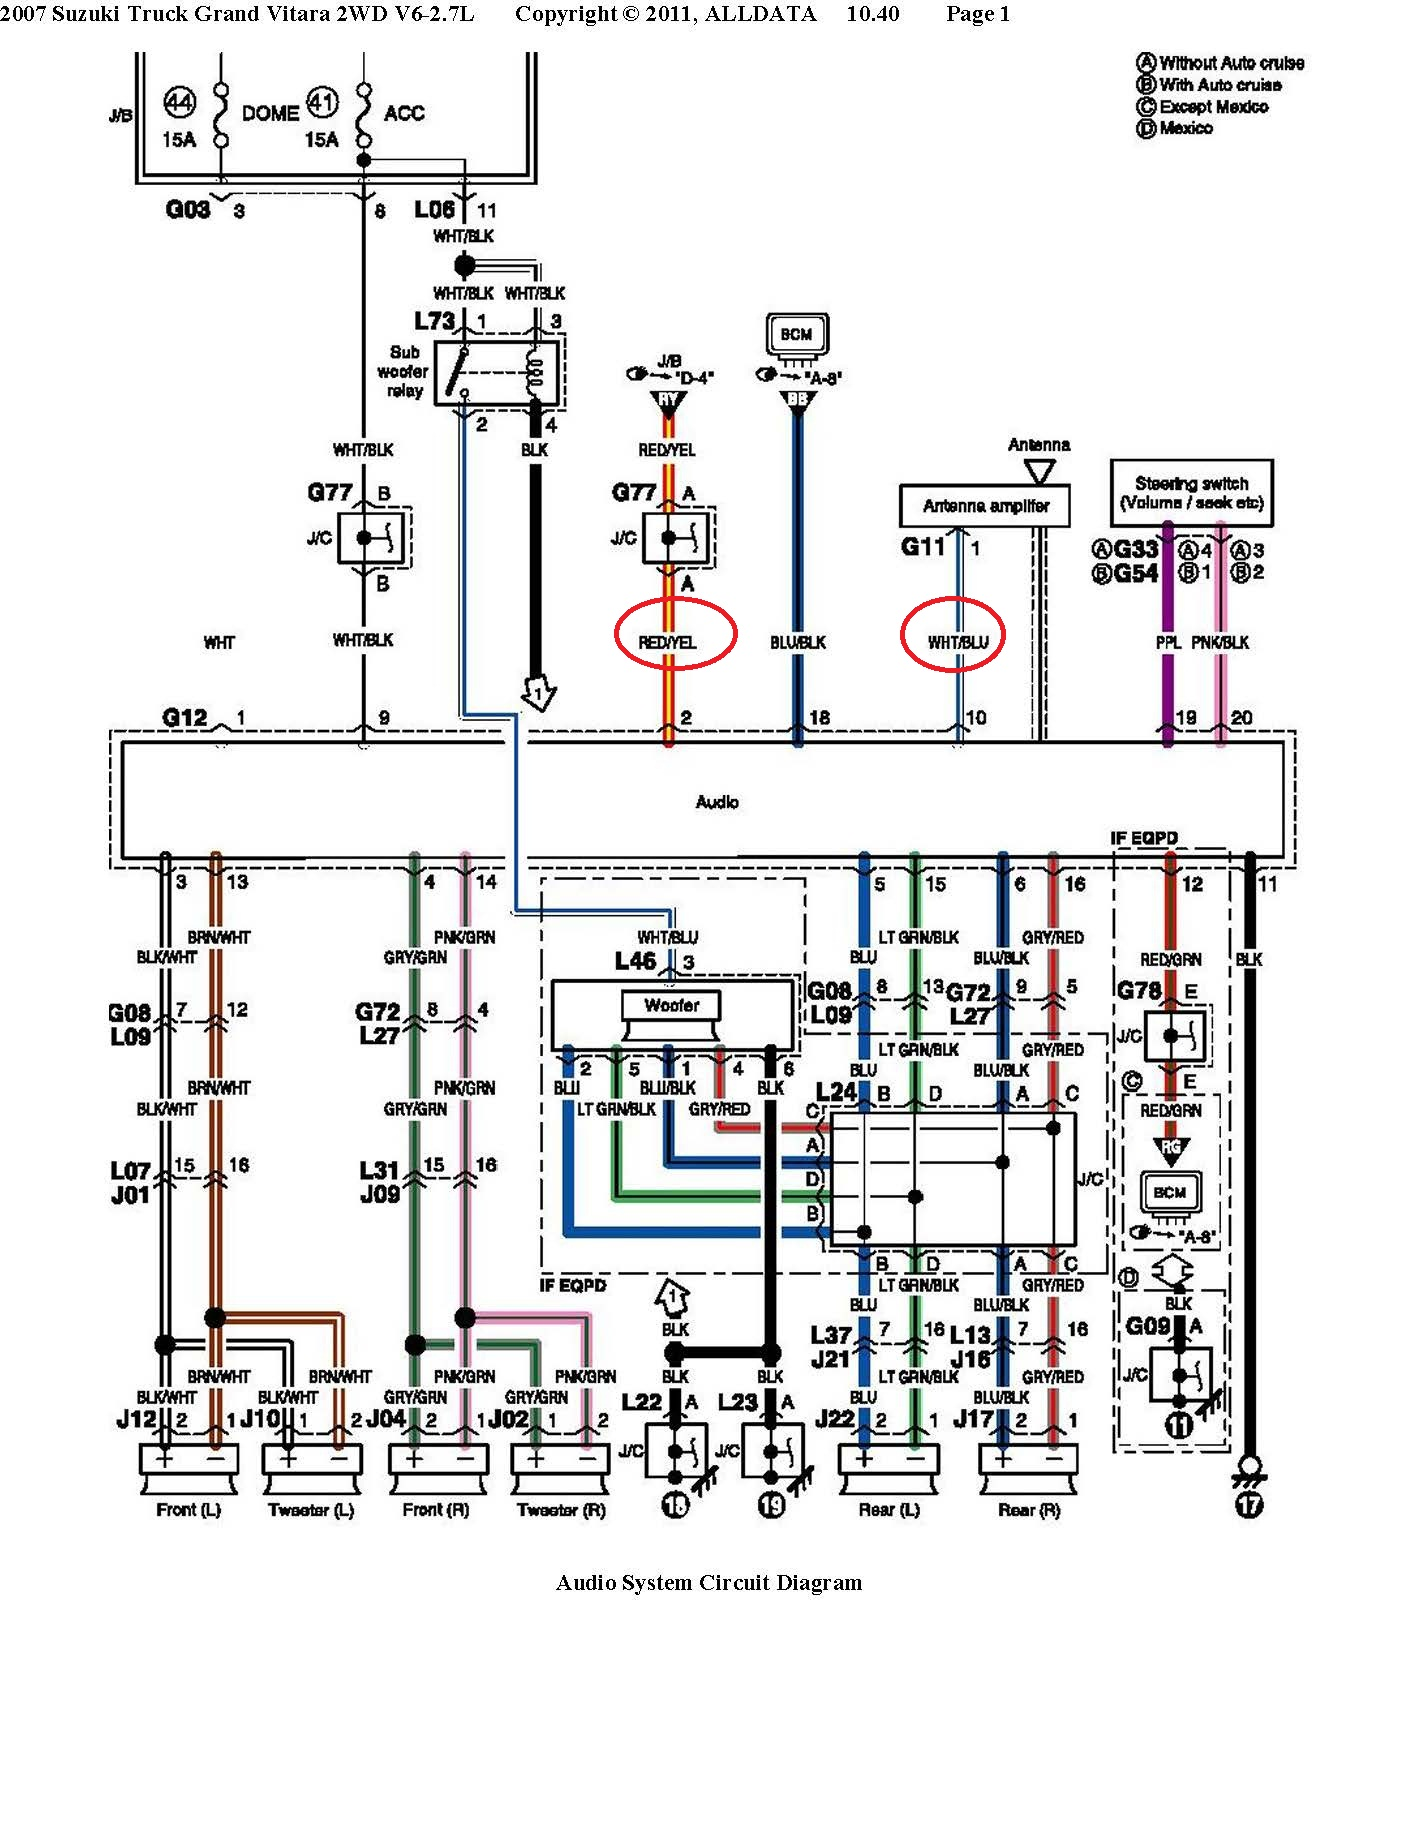 Ford Ignition Switch Connector Diagram Wiring Will Be A 1970 Suzuki Car Radio Stereo Audio Autoradio F 250 Replacement